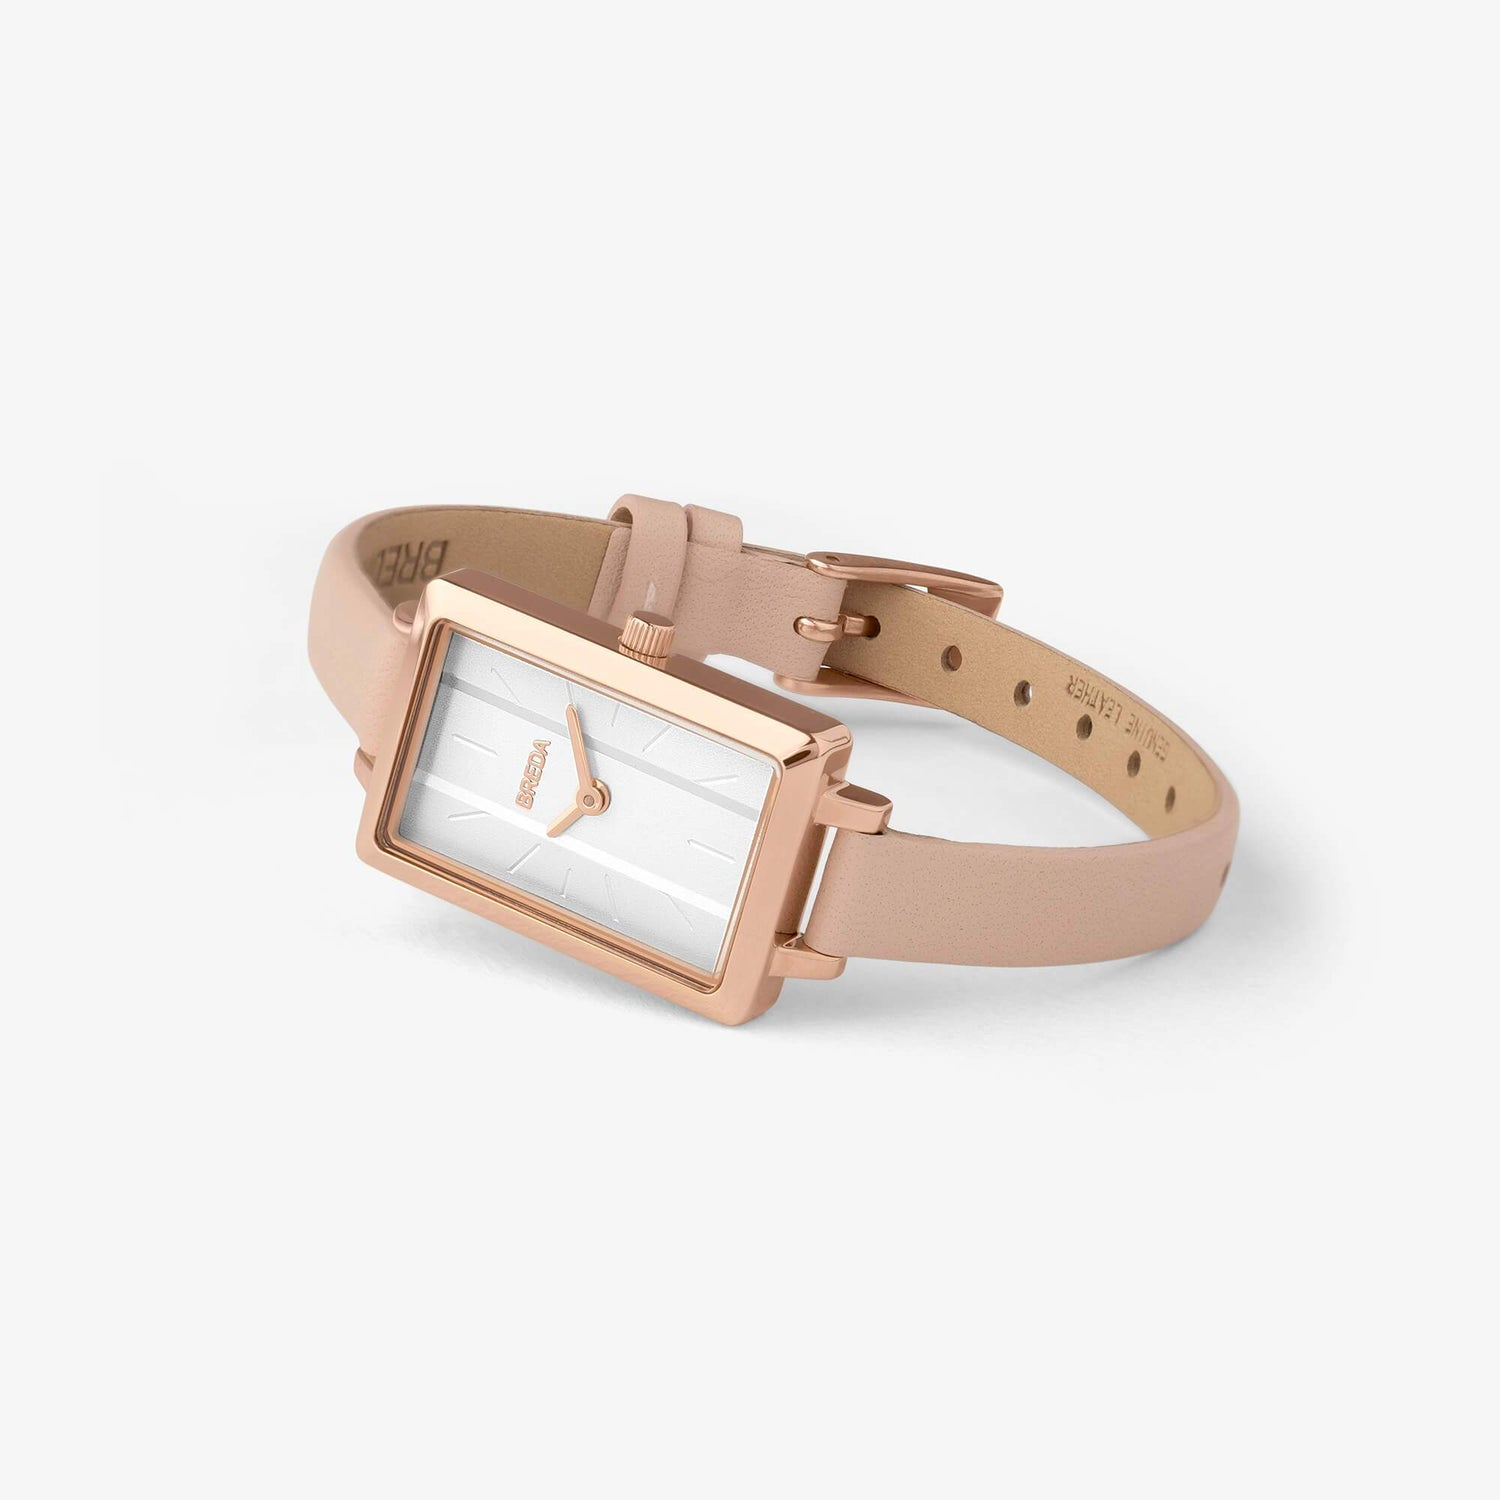 EVA 1738A Rose Gold/Blush/Ivory